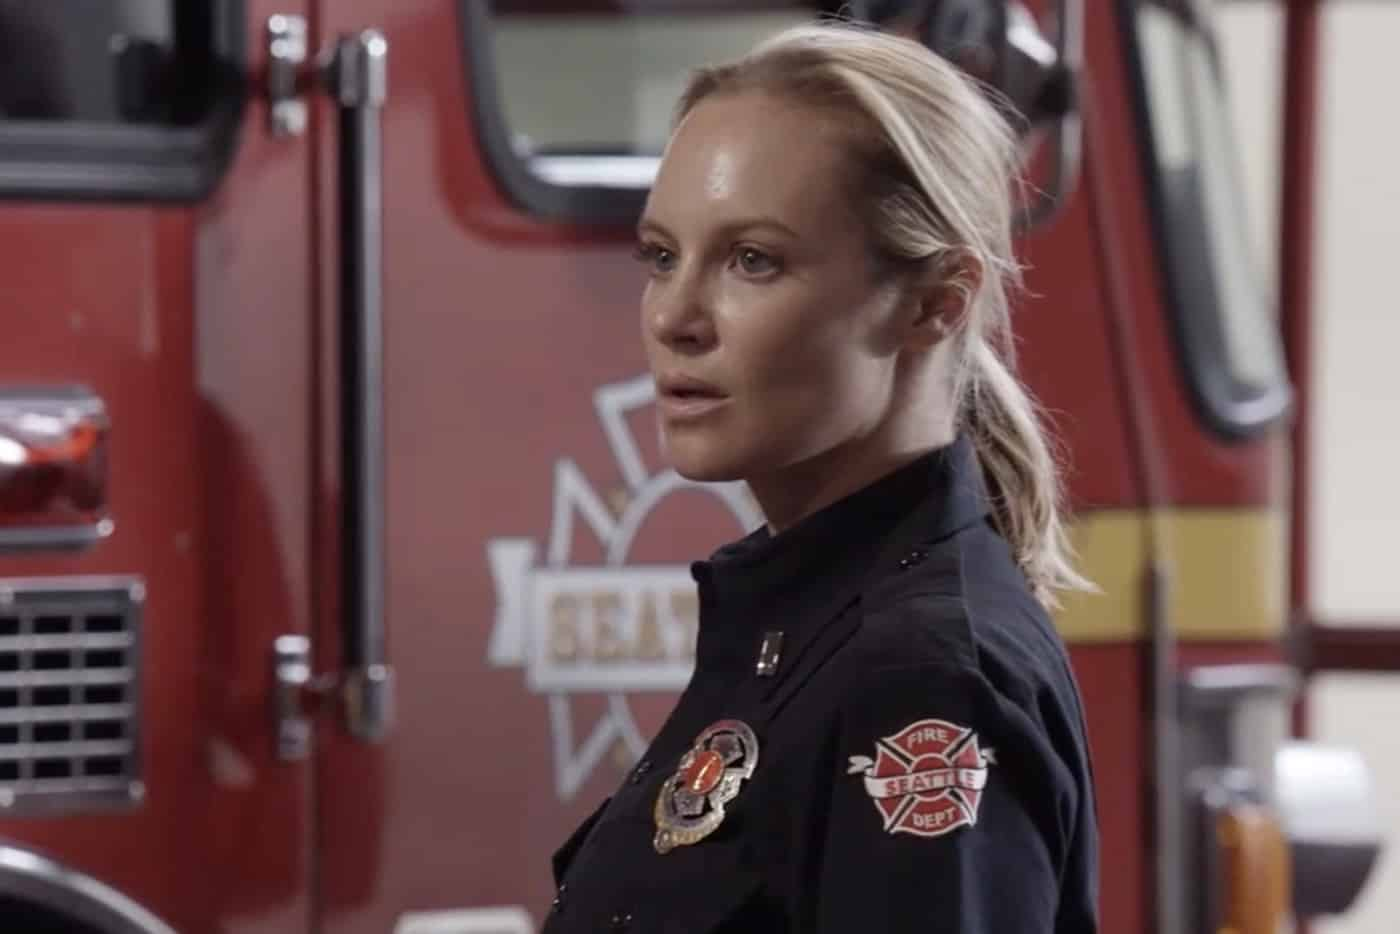 """STATION 19 Season 5 Episode 1 - """"Phoenix from the Flame"""" – Relationships are challenged at Station 19 following Sullivan's actions at Maya and Carina's wedding, putting his marriage with Andy to the test. Dean comes to terms with his feelings for Vic, while Travis rekindles an old flame. The annual Phoenix Festival brings out some reckless behavior in some of Seattle's citizens, challenging the teams at Station 19 and Grey Sloan Memorial in the season premiere of """"Station 19,"""" THURSDAY, SEPT. 30 (8:00-9:00 p.m. EDT), on ABC. (ABC) DANIELLE SAVRE"""